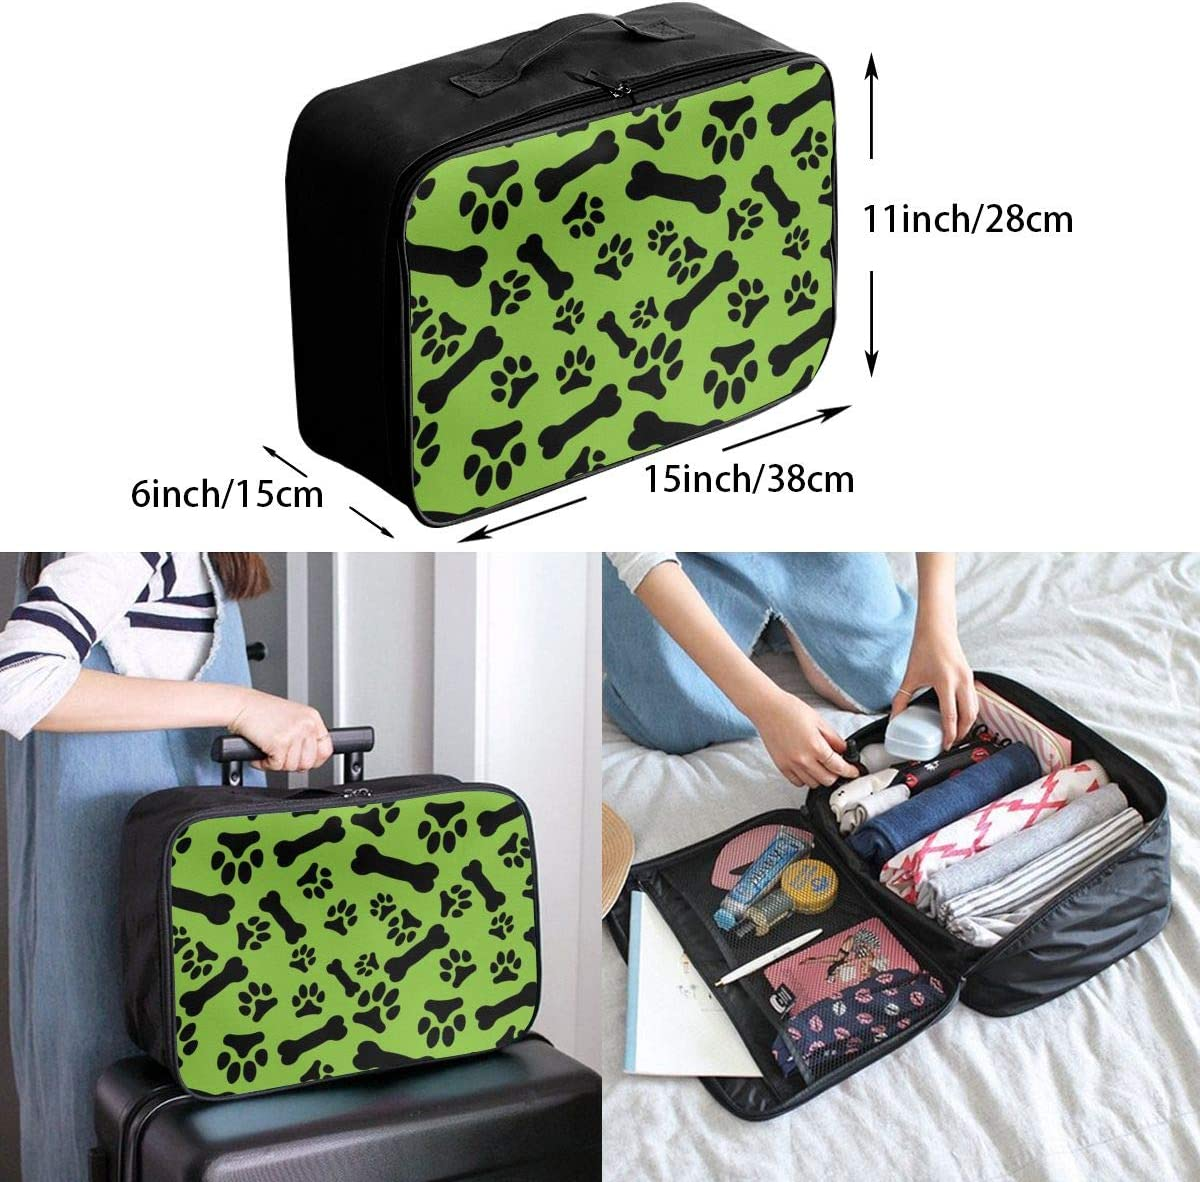 Yunshm Seamless Pattern With Black Dog Paw Prints Personalized Trolley Handbag Waterproof Unisex Large Capacity For Business Travel Storage